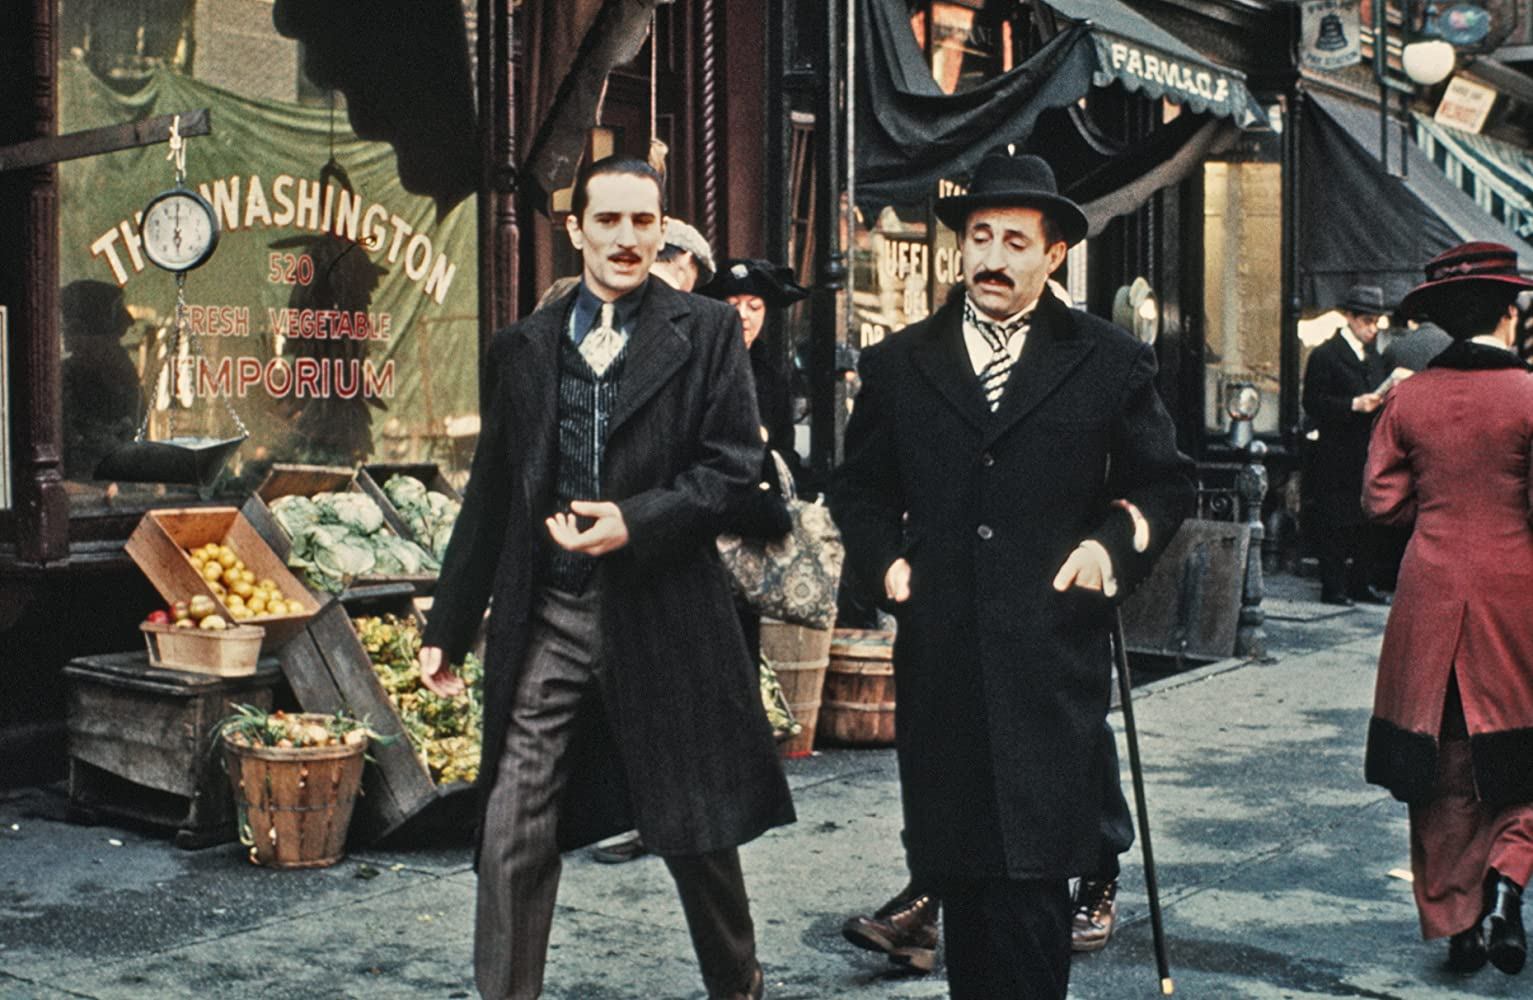 Robert De Niro and Leopoldo Trieste in The Godfather: Part II (1974)